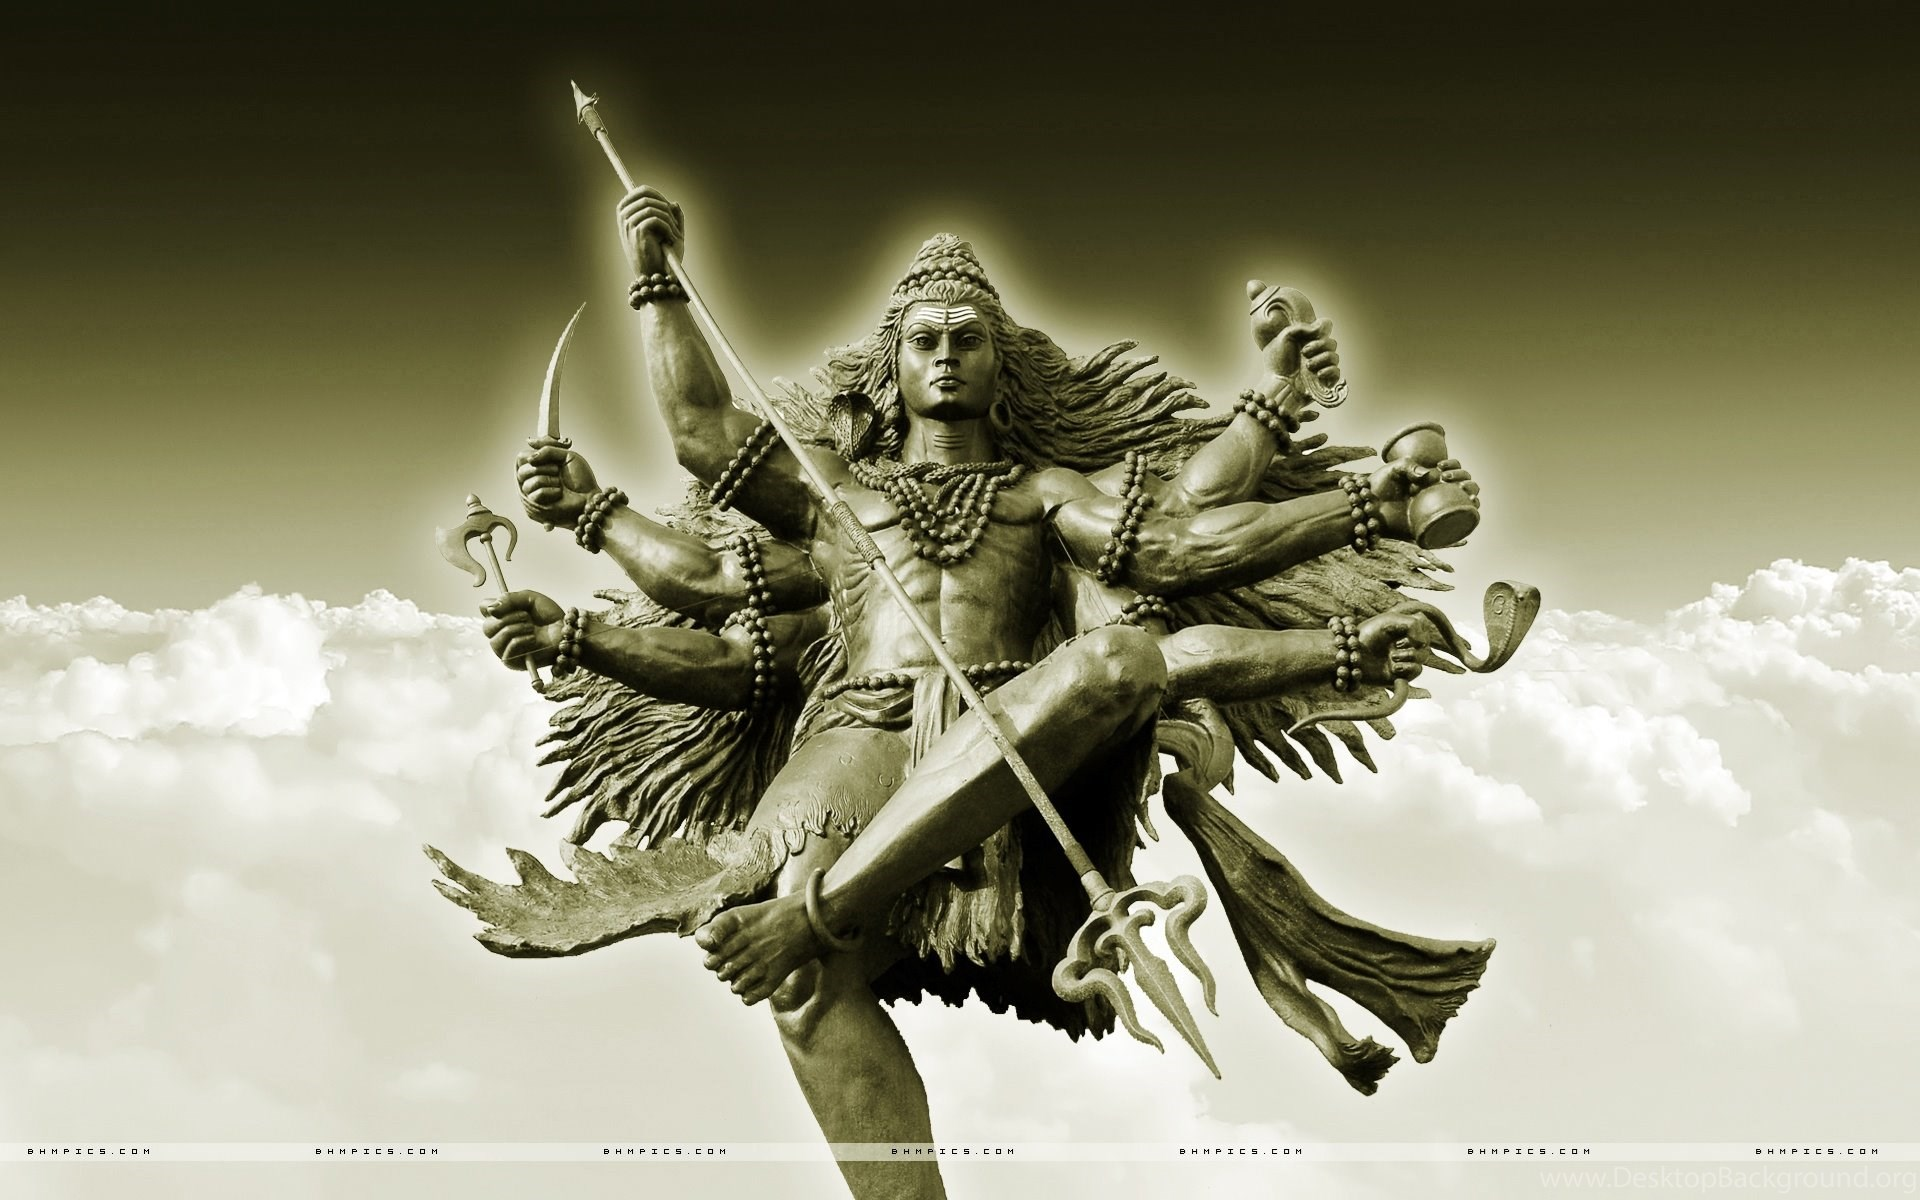 Most Inspiring Wallpaper Lord Shiv - 777705_wallpapers-lord-shiva-angry-photos-hd-kaal-bhairav-4-1920x1200_1920x1200_h  Collection_845069.jpg